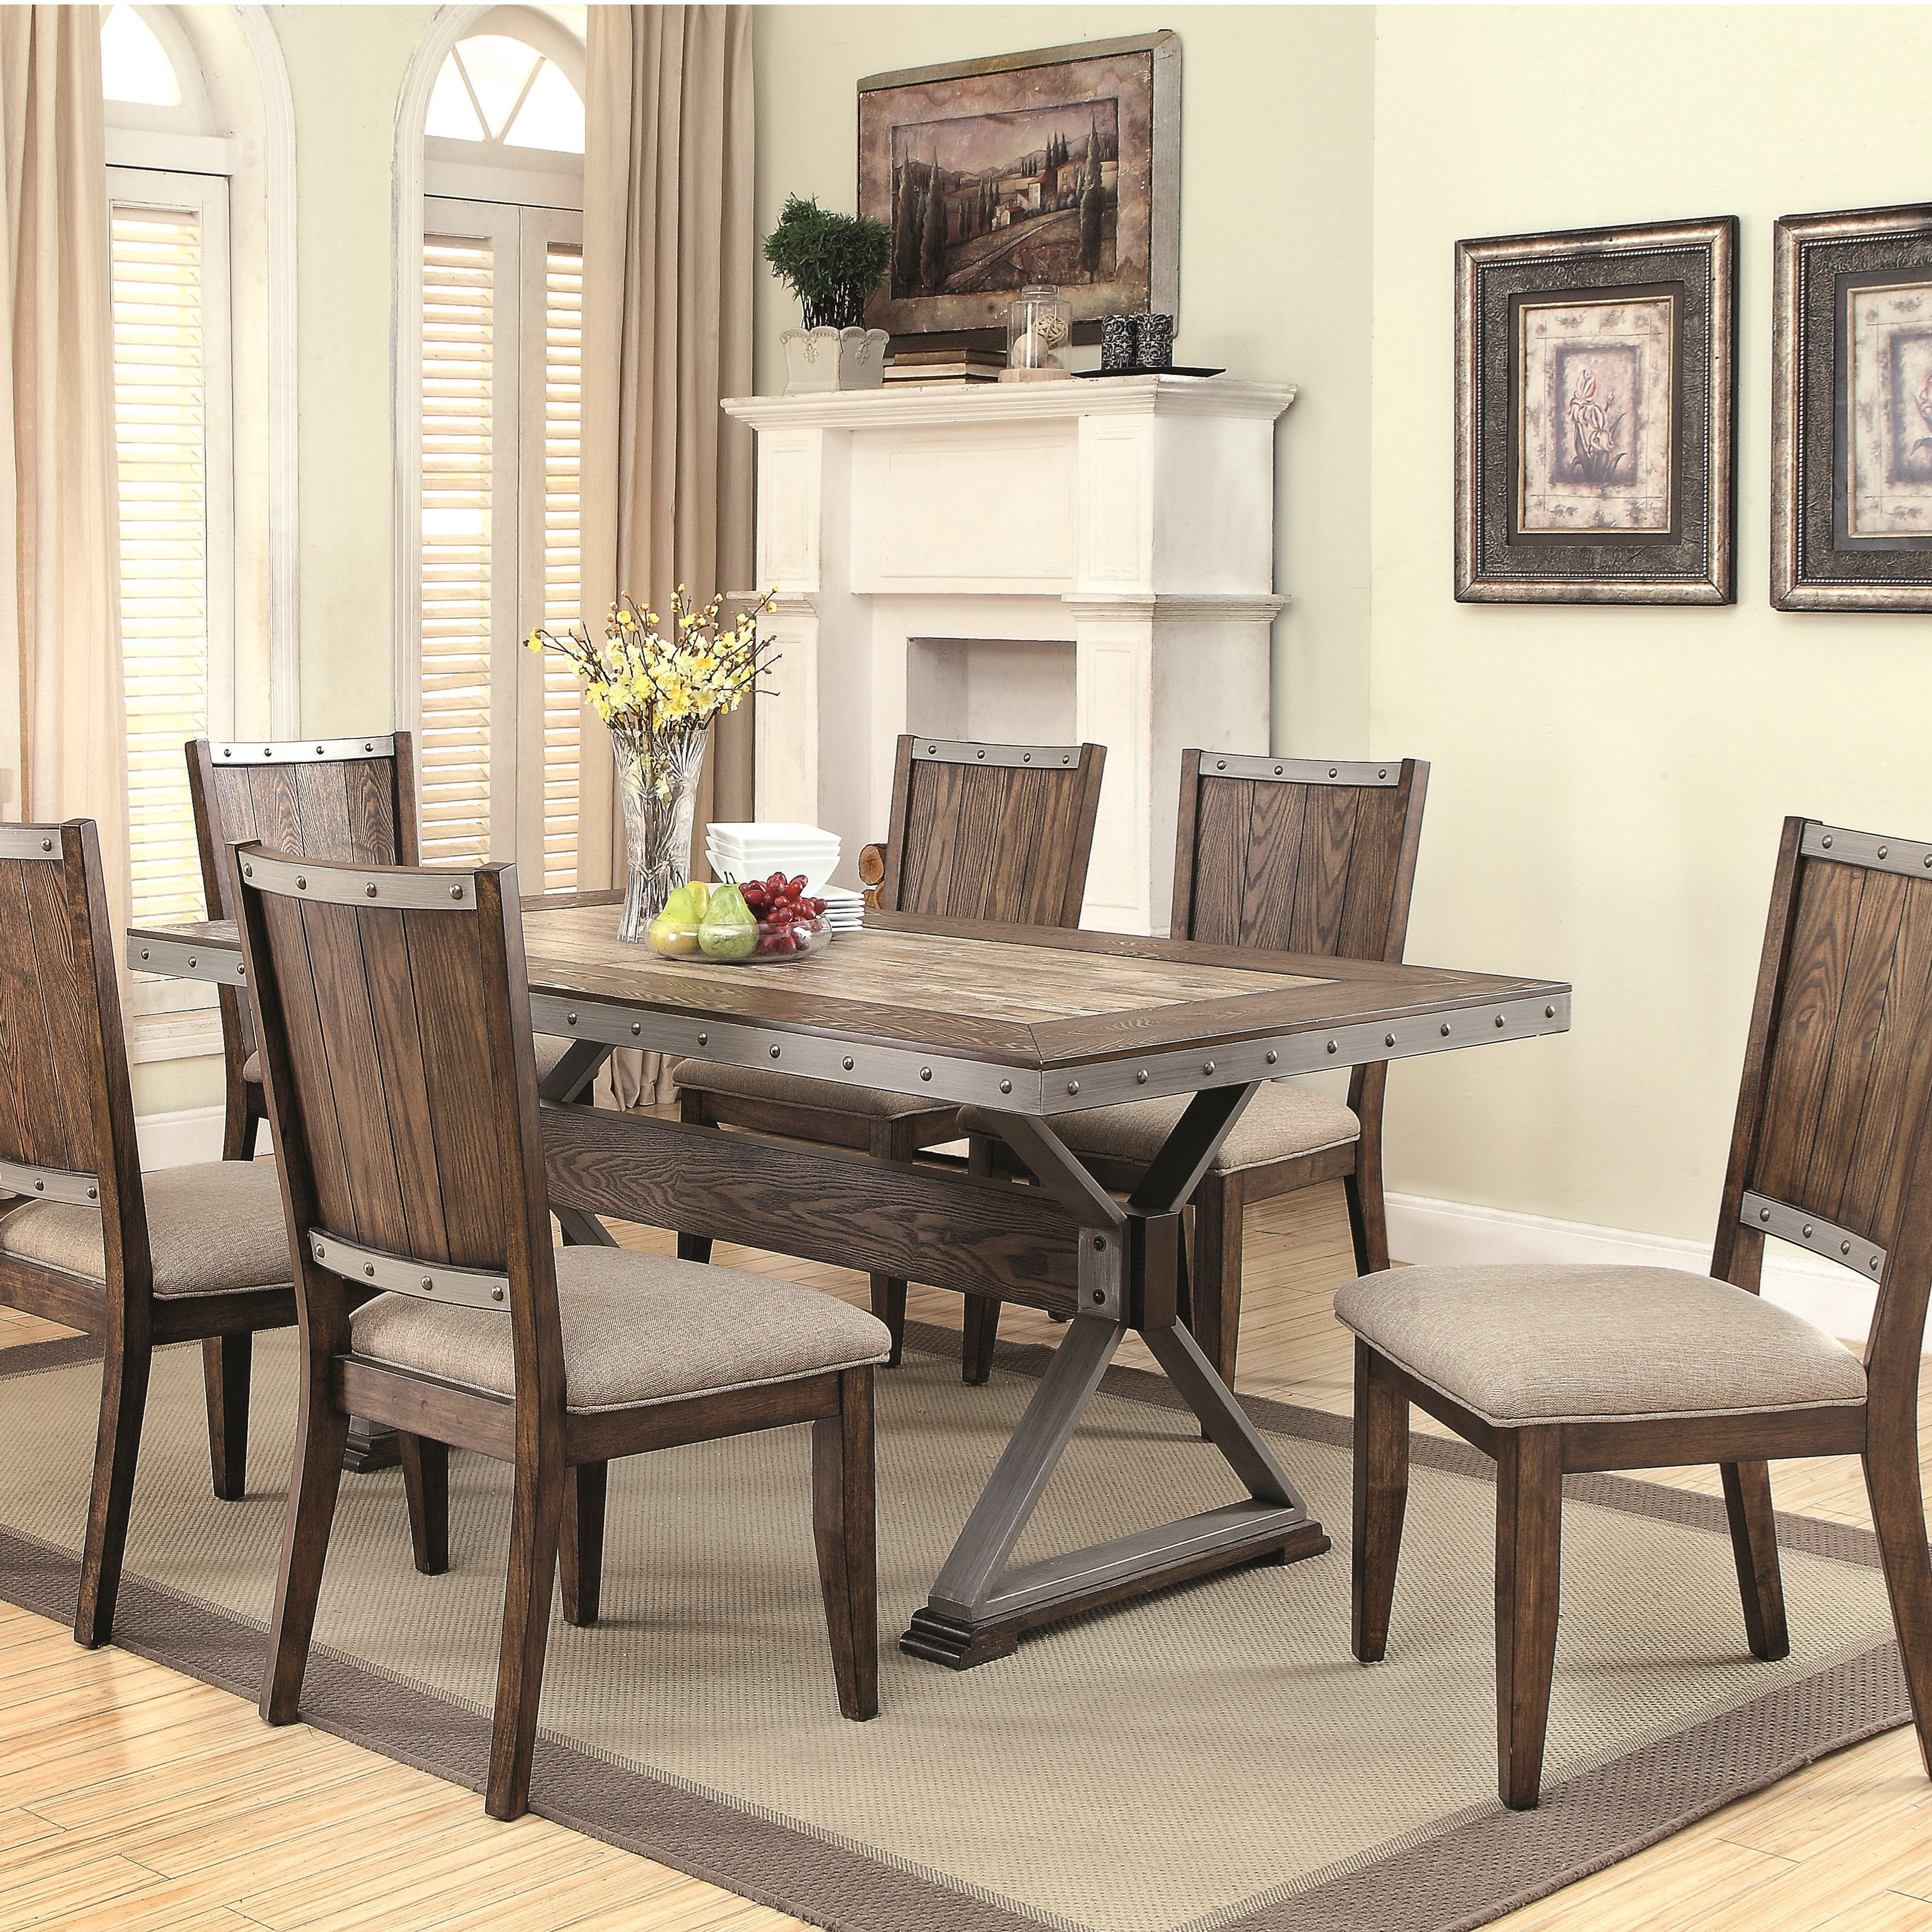 Coaster Beckett 7 Piece Table Set - Item Number: 107011+6x107012